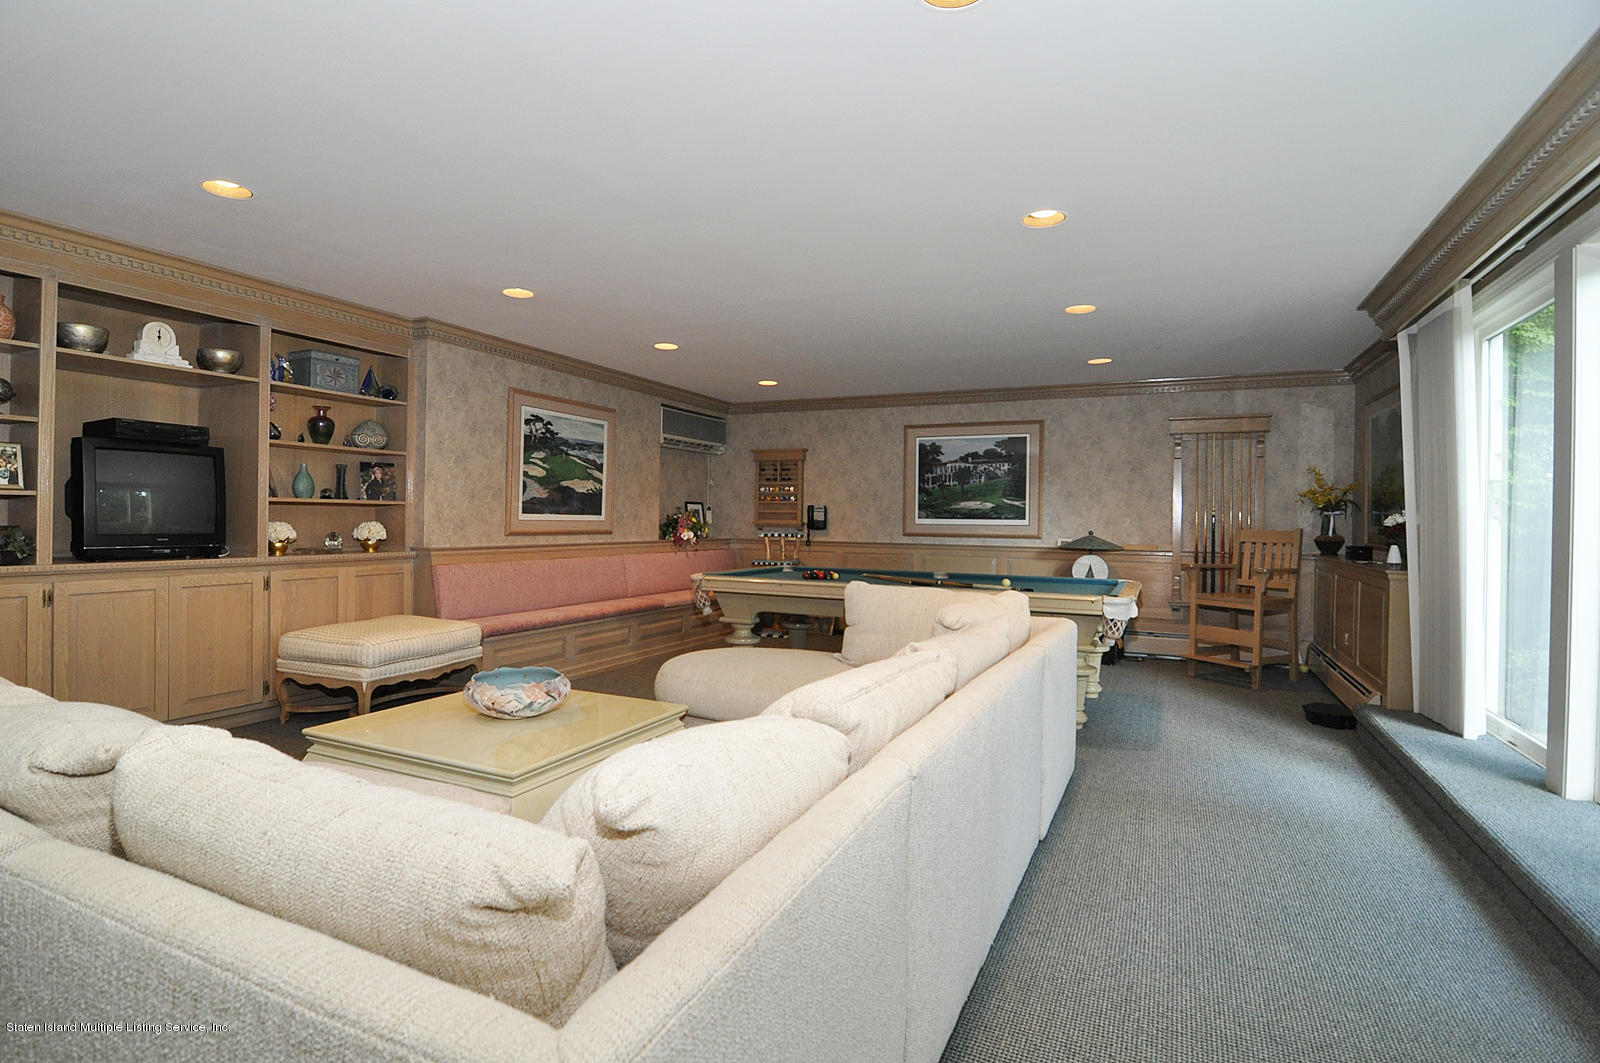 Single Family - Detached 738 Todt Hill Road  Staten Island, NY 10301, MLS-1127956-14